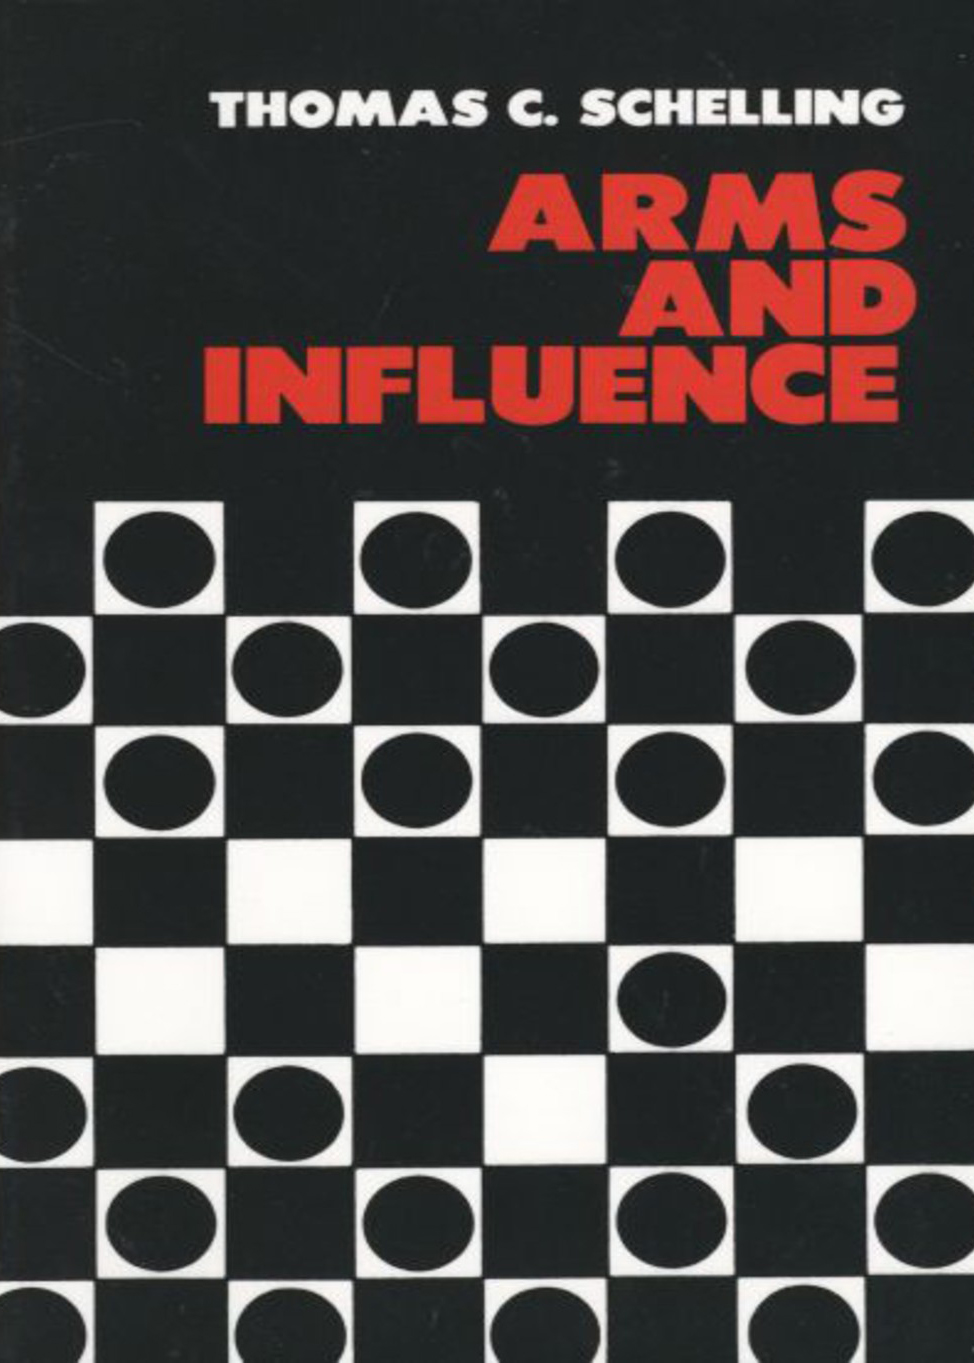 Schelling, Thomas - Arms and Influence.jpg